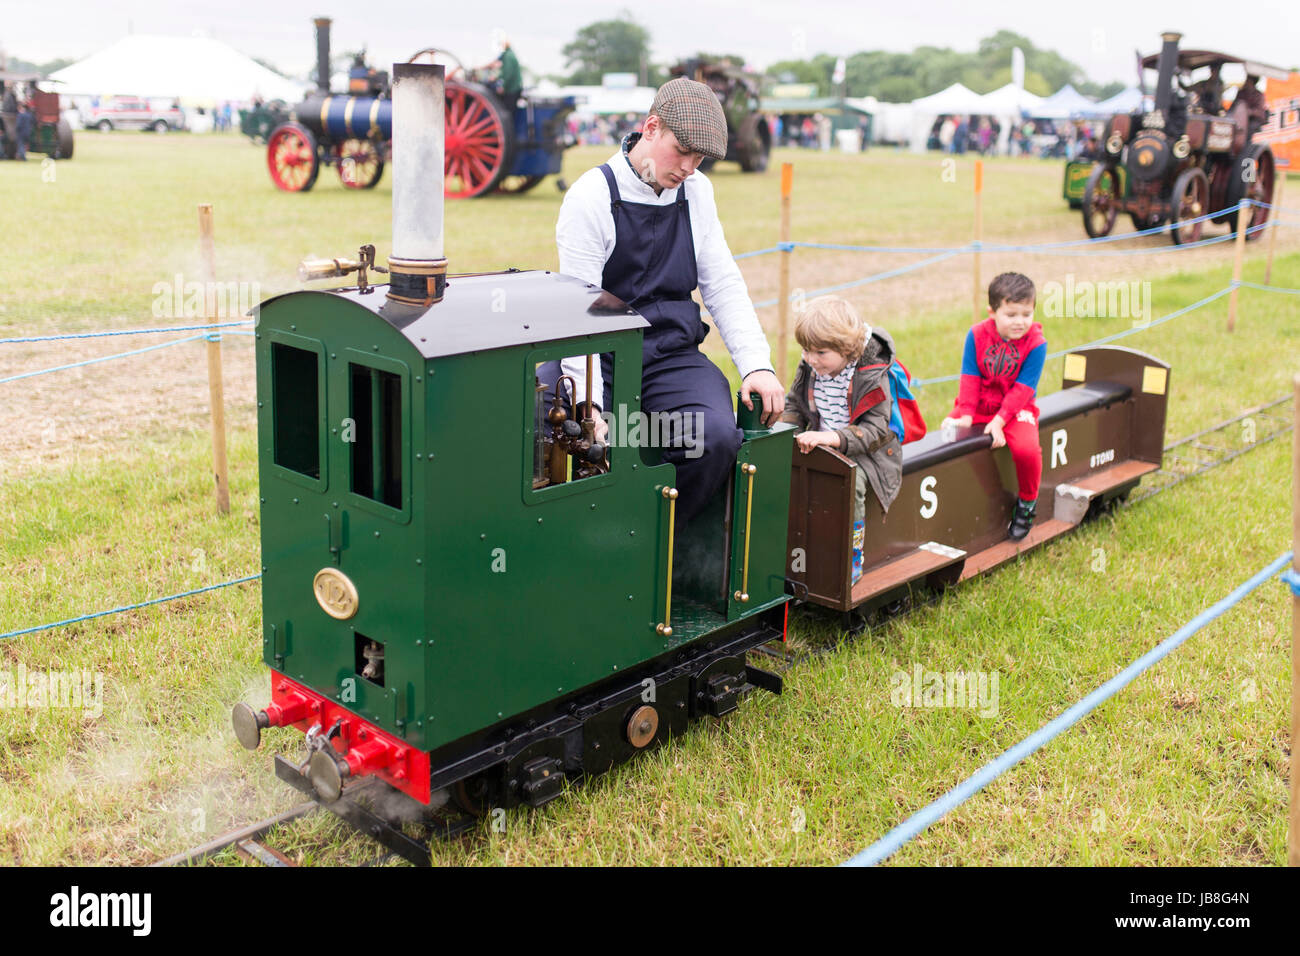 Traction Stock Photos & Traction Stock Images - Alamy